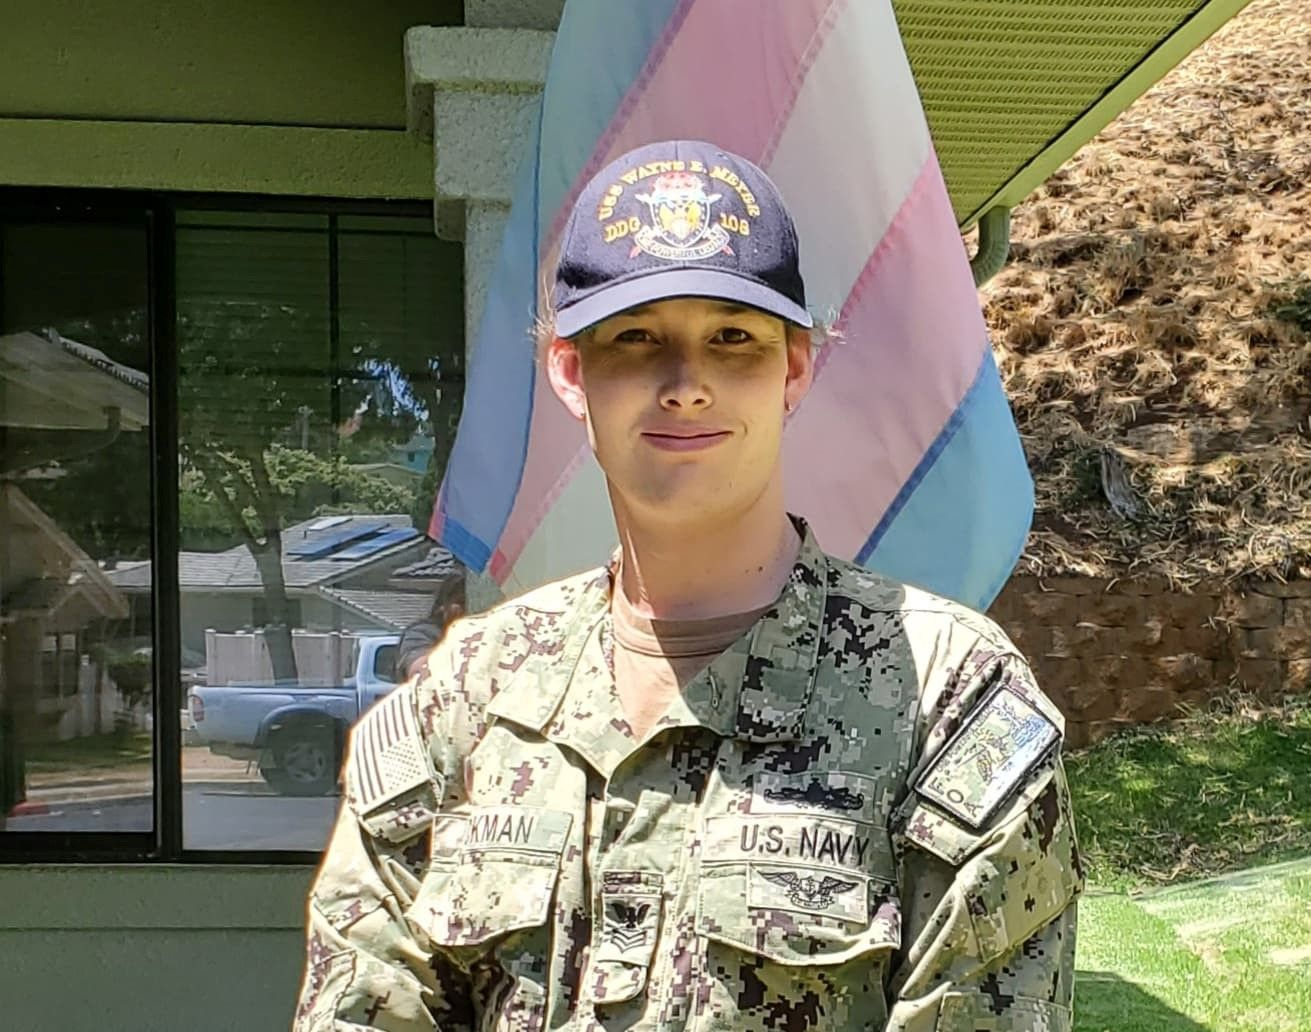 Commitment to Serve - Petty Officer 1st Class Molly Sackman